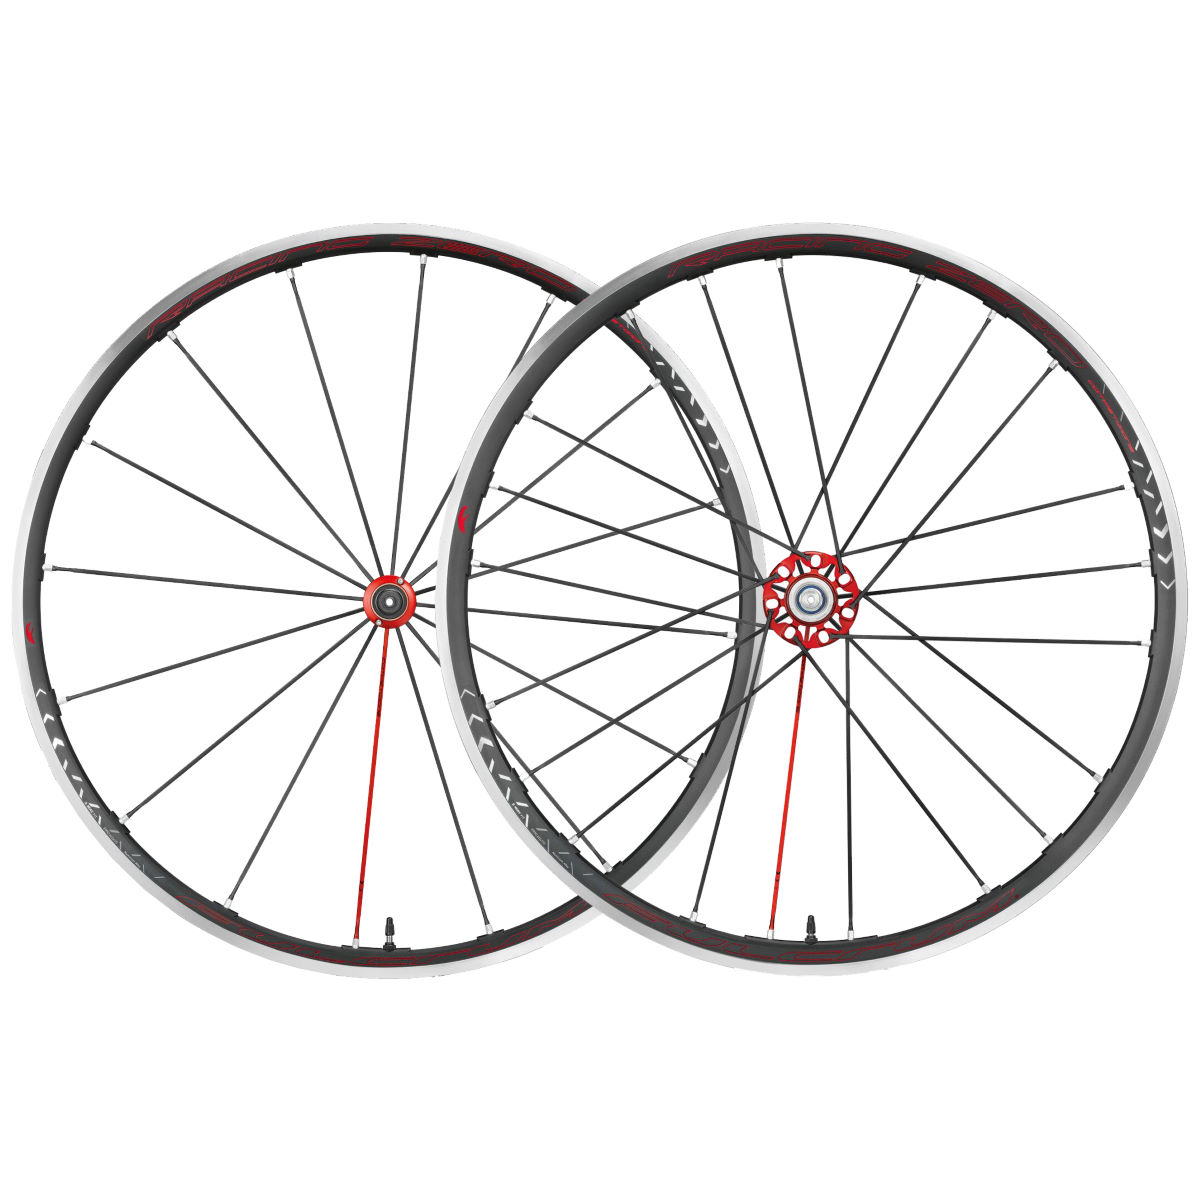 Roue Fulcrum Racing Zero C17 Competizione - Campagnolo 10/11 Noir/Rouge Roues performance